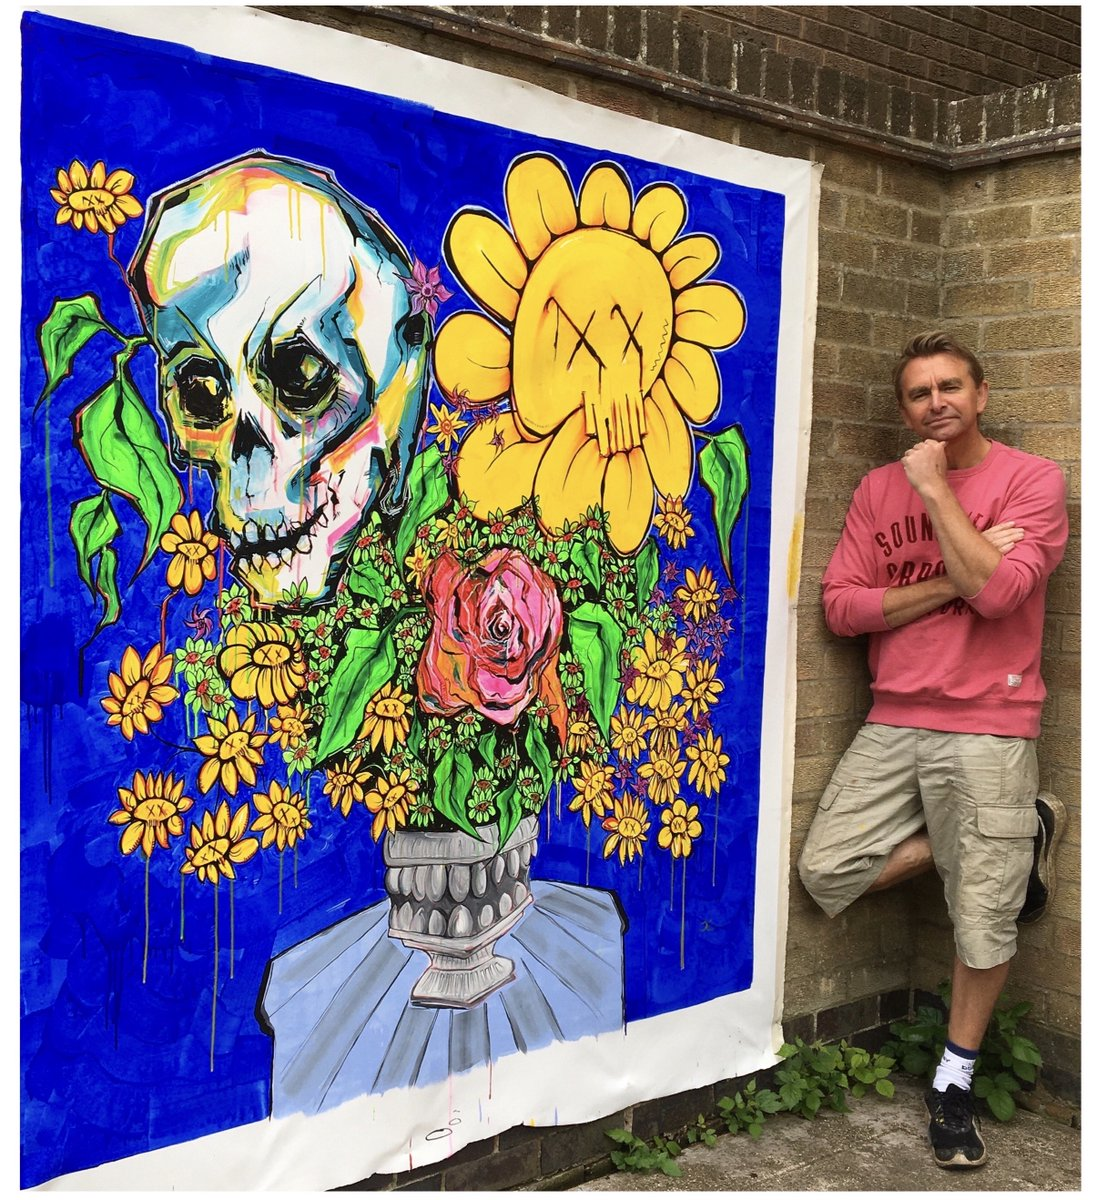 In these large #artworks I'm exploring the crossovers of #arthistory, #contemporarypainting and #StreetArt. http://jonjoelliott.com  #art #Flowers #MondayMotivaton #MondayMorning @streetartnews @StreetArt360pic.twitter.com/UMuV1nH05Y